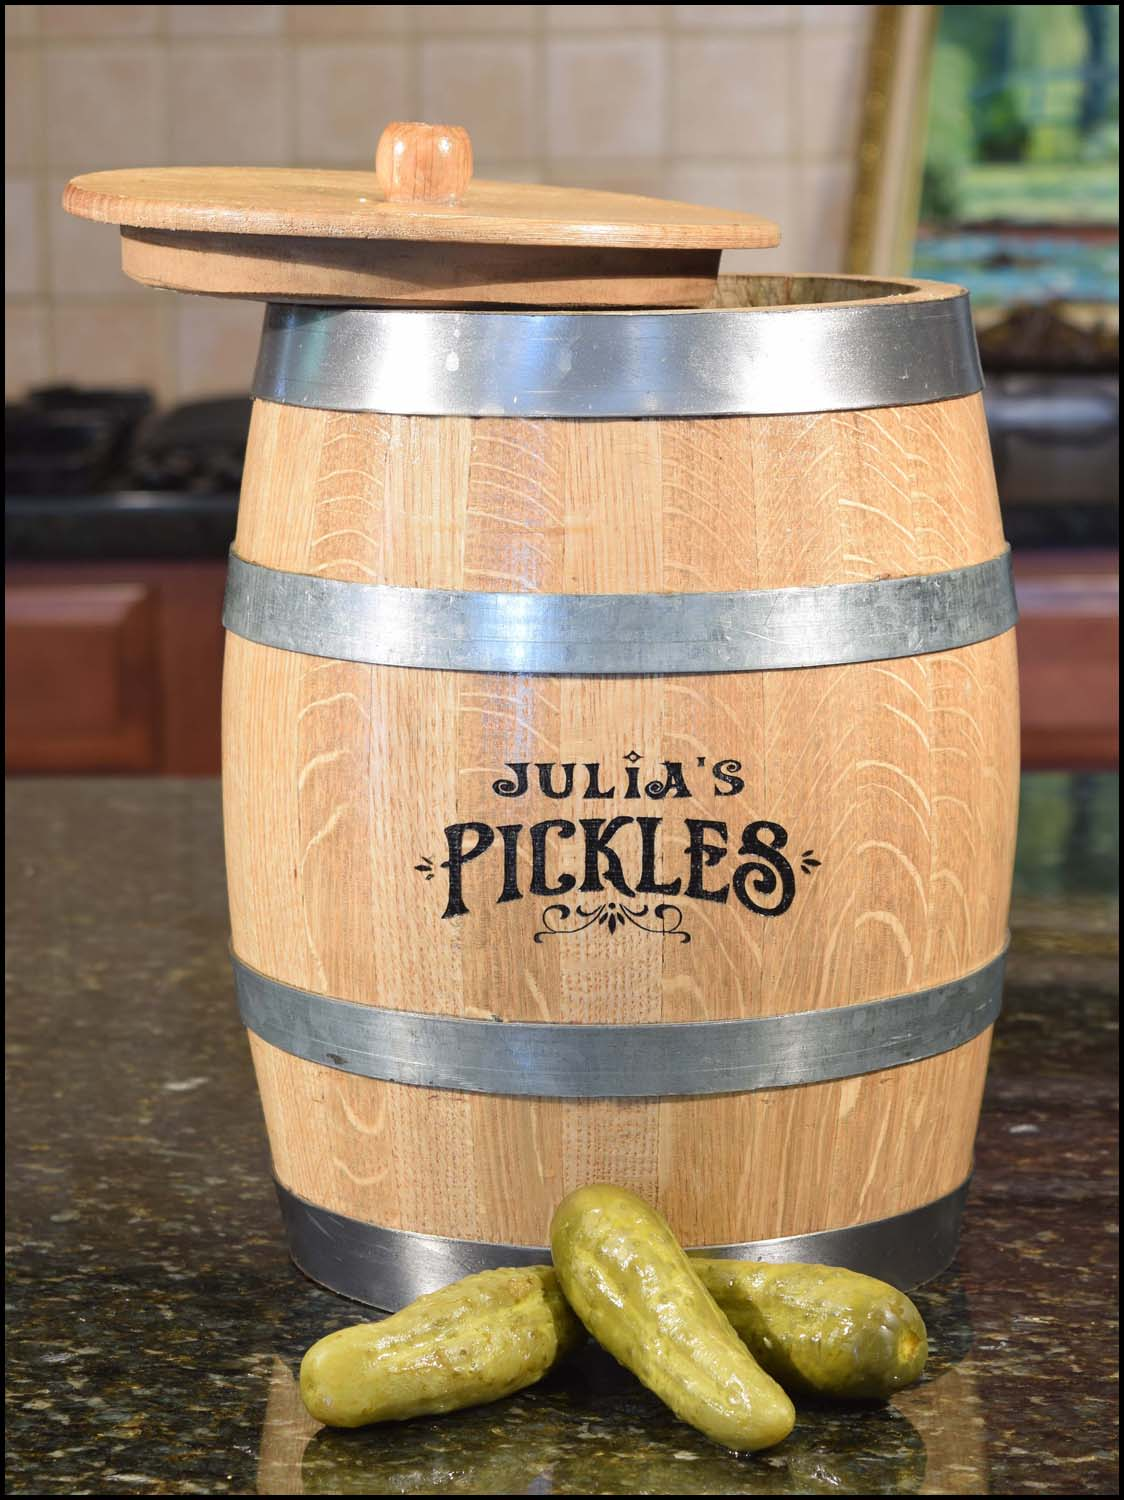 The Amazing Pickle Barrel Pickling Kit